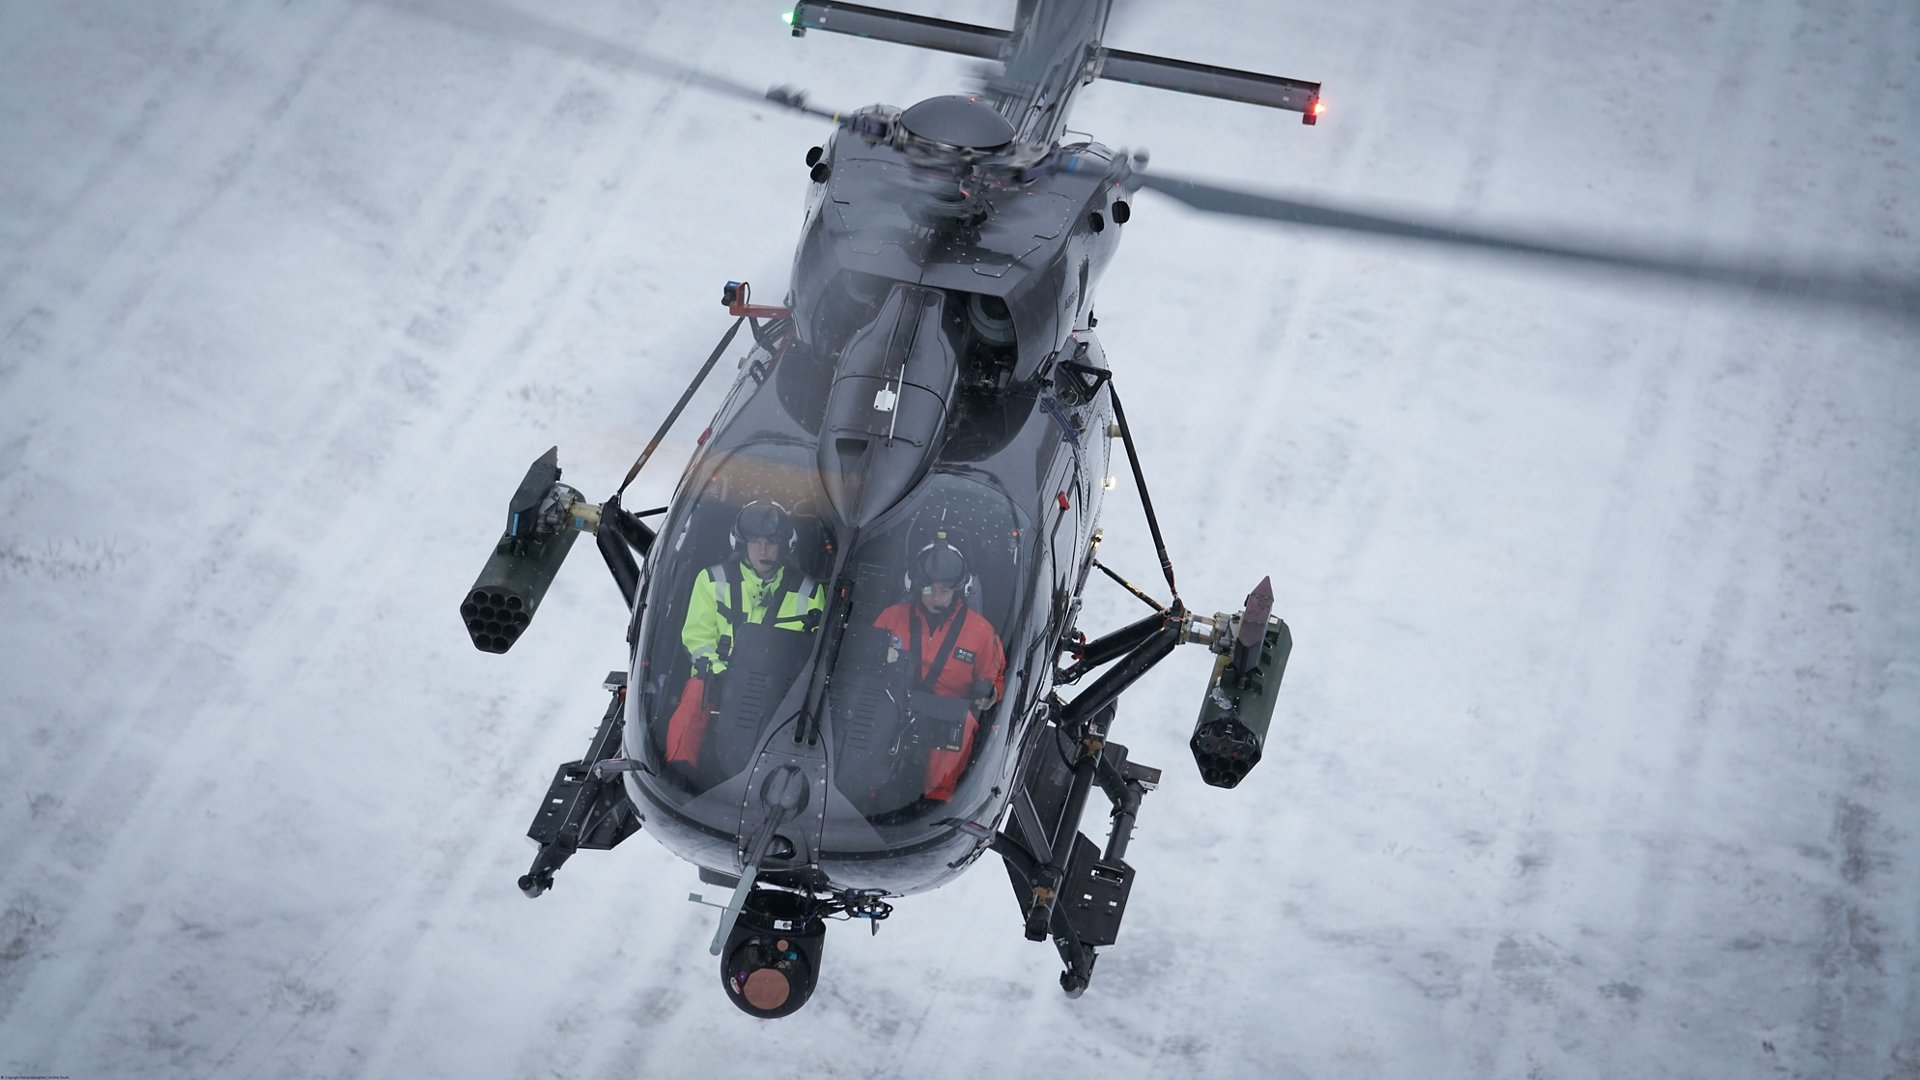 In the first weeks of December 2017, Airbus Helicopters demonstrated the ability to fire laser guided rockets (FZ275 LGR from Thales) with its new H145M platform at the Älvdalen test range of the Swedish Defence Materiel Administration Flight test Centre. In a rough and challenging environment the system performed flawlessly.